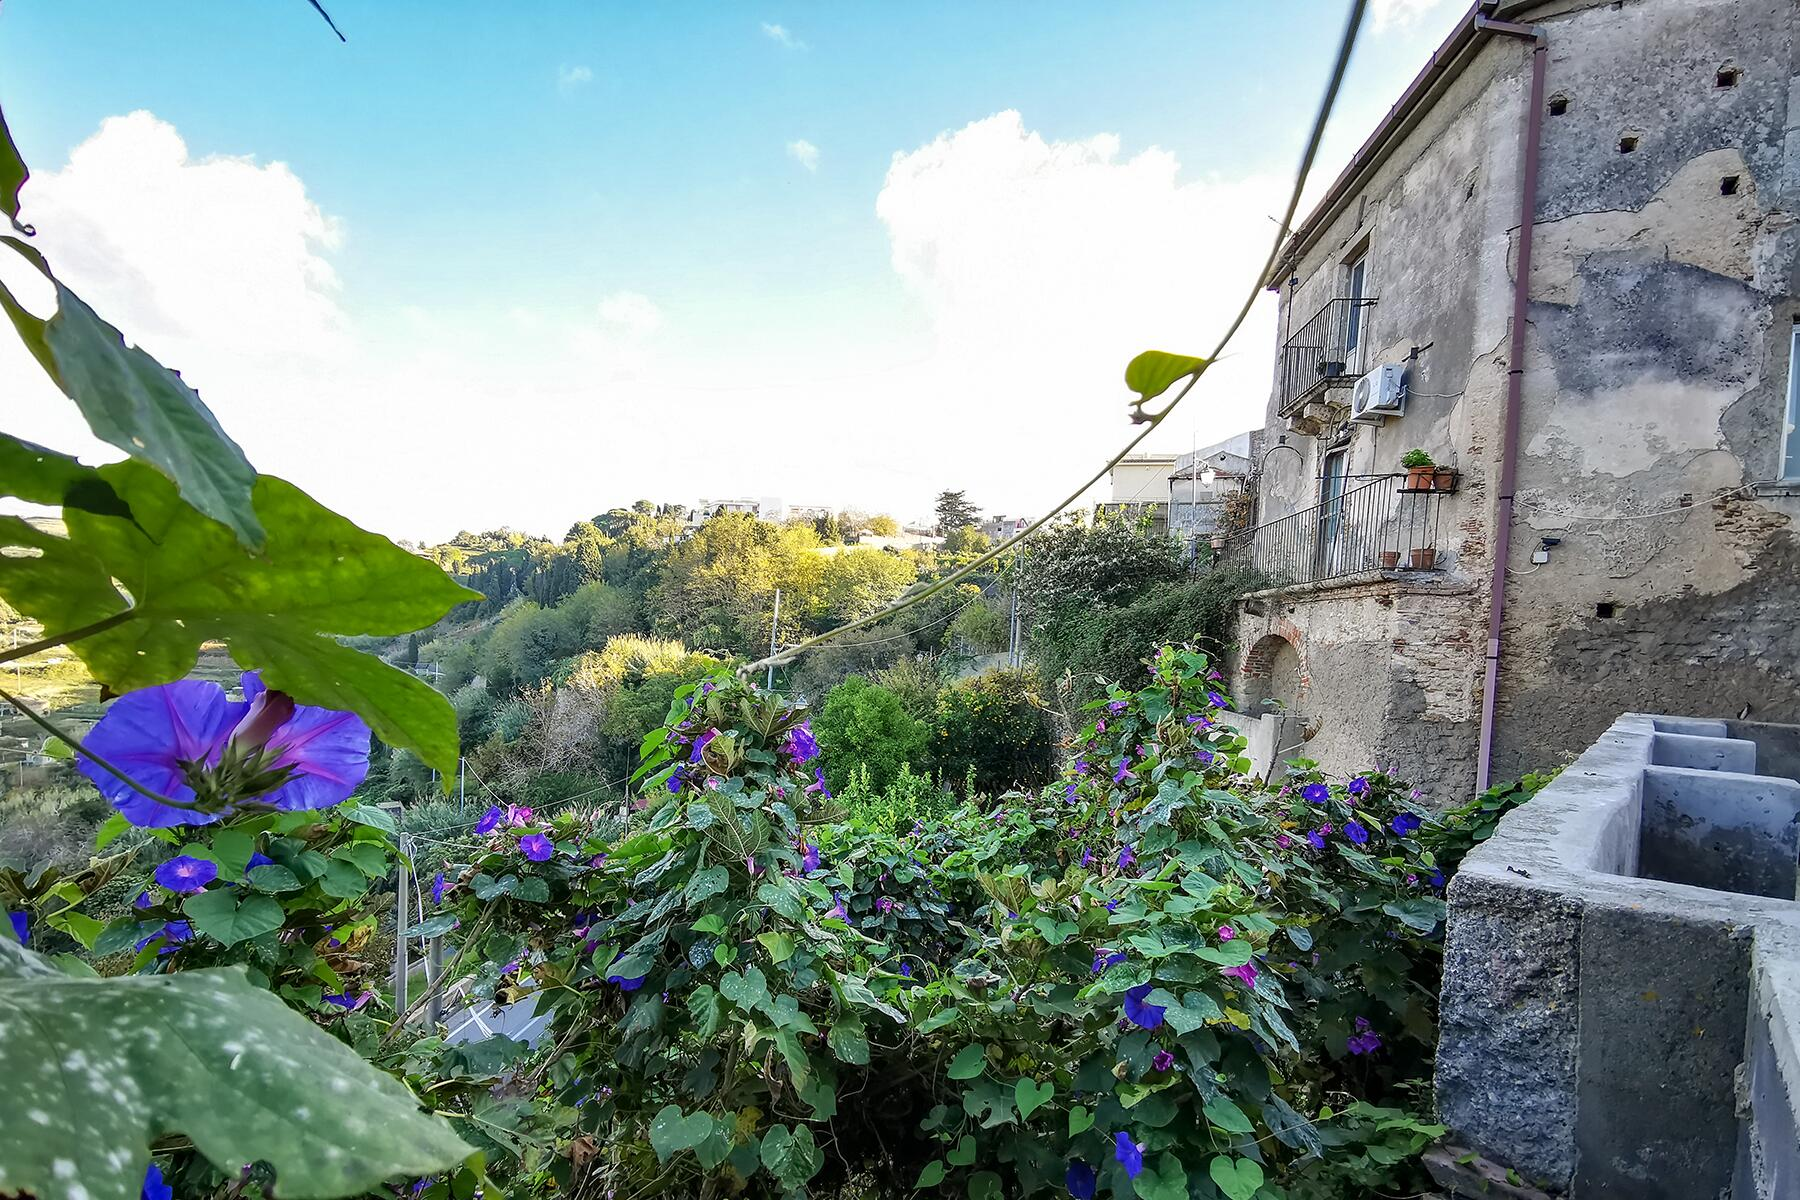 Gesso's house is covered in lush vegetation c Silvia